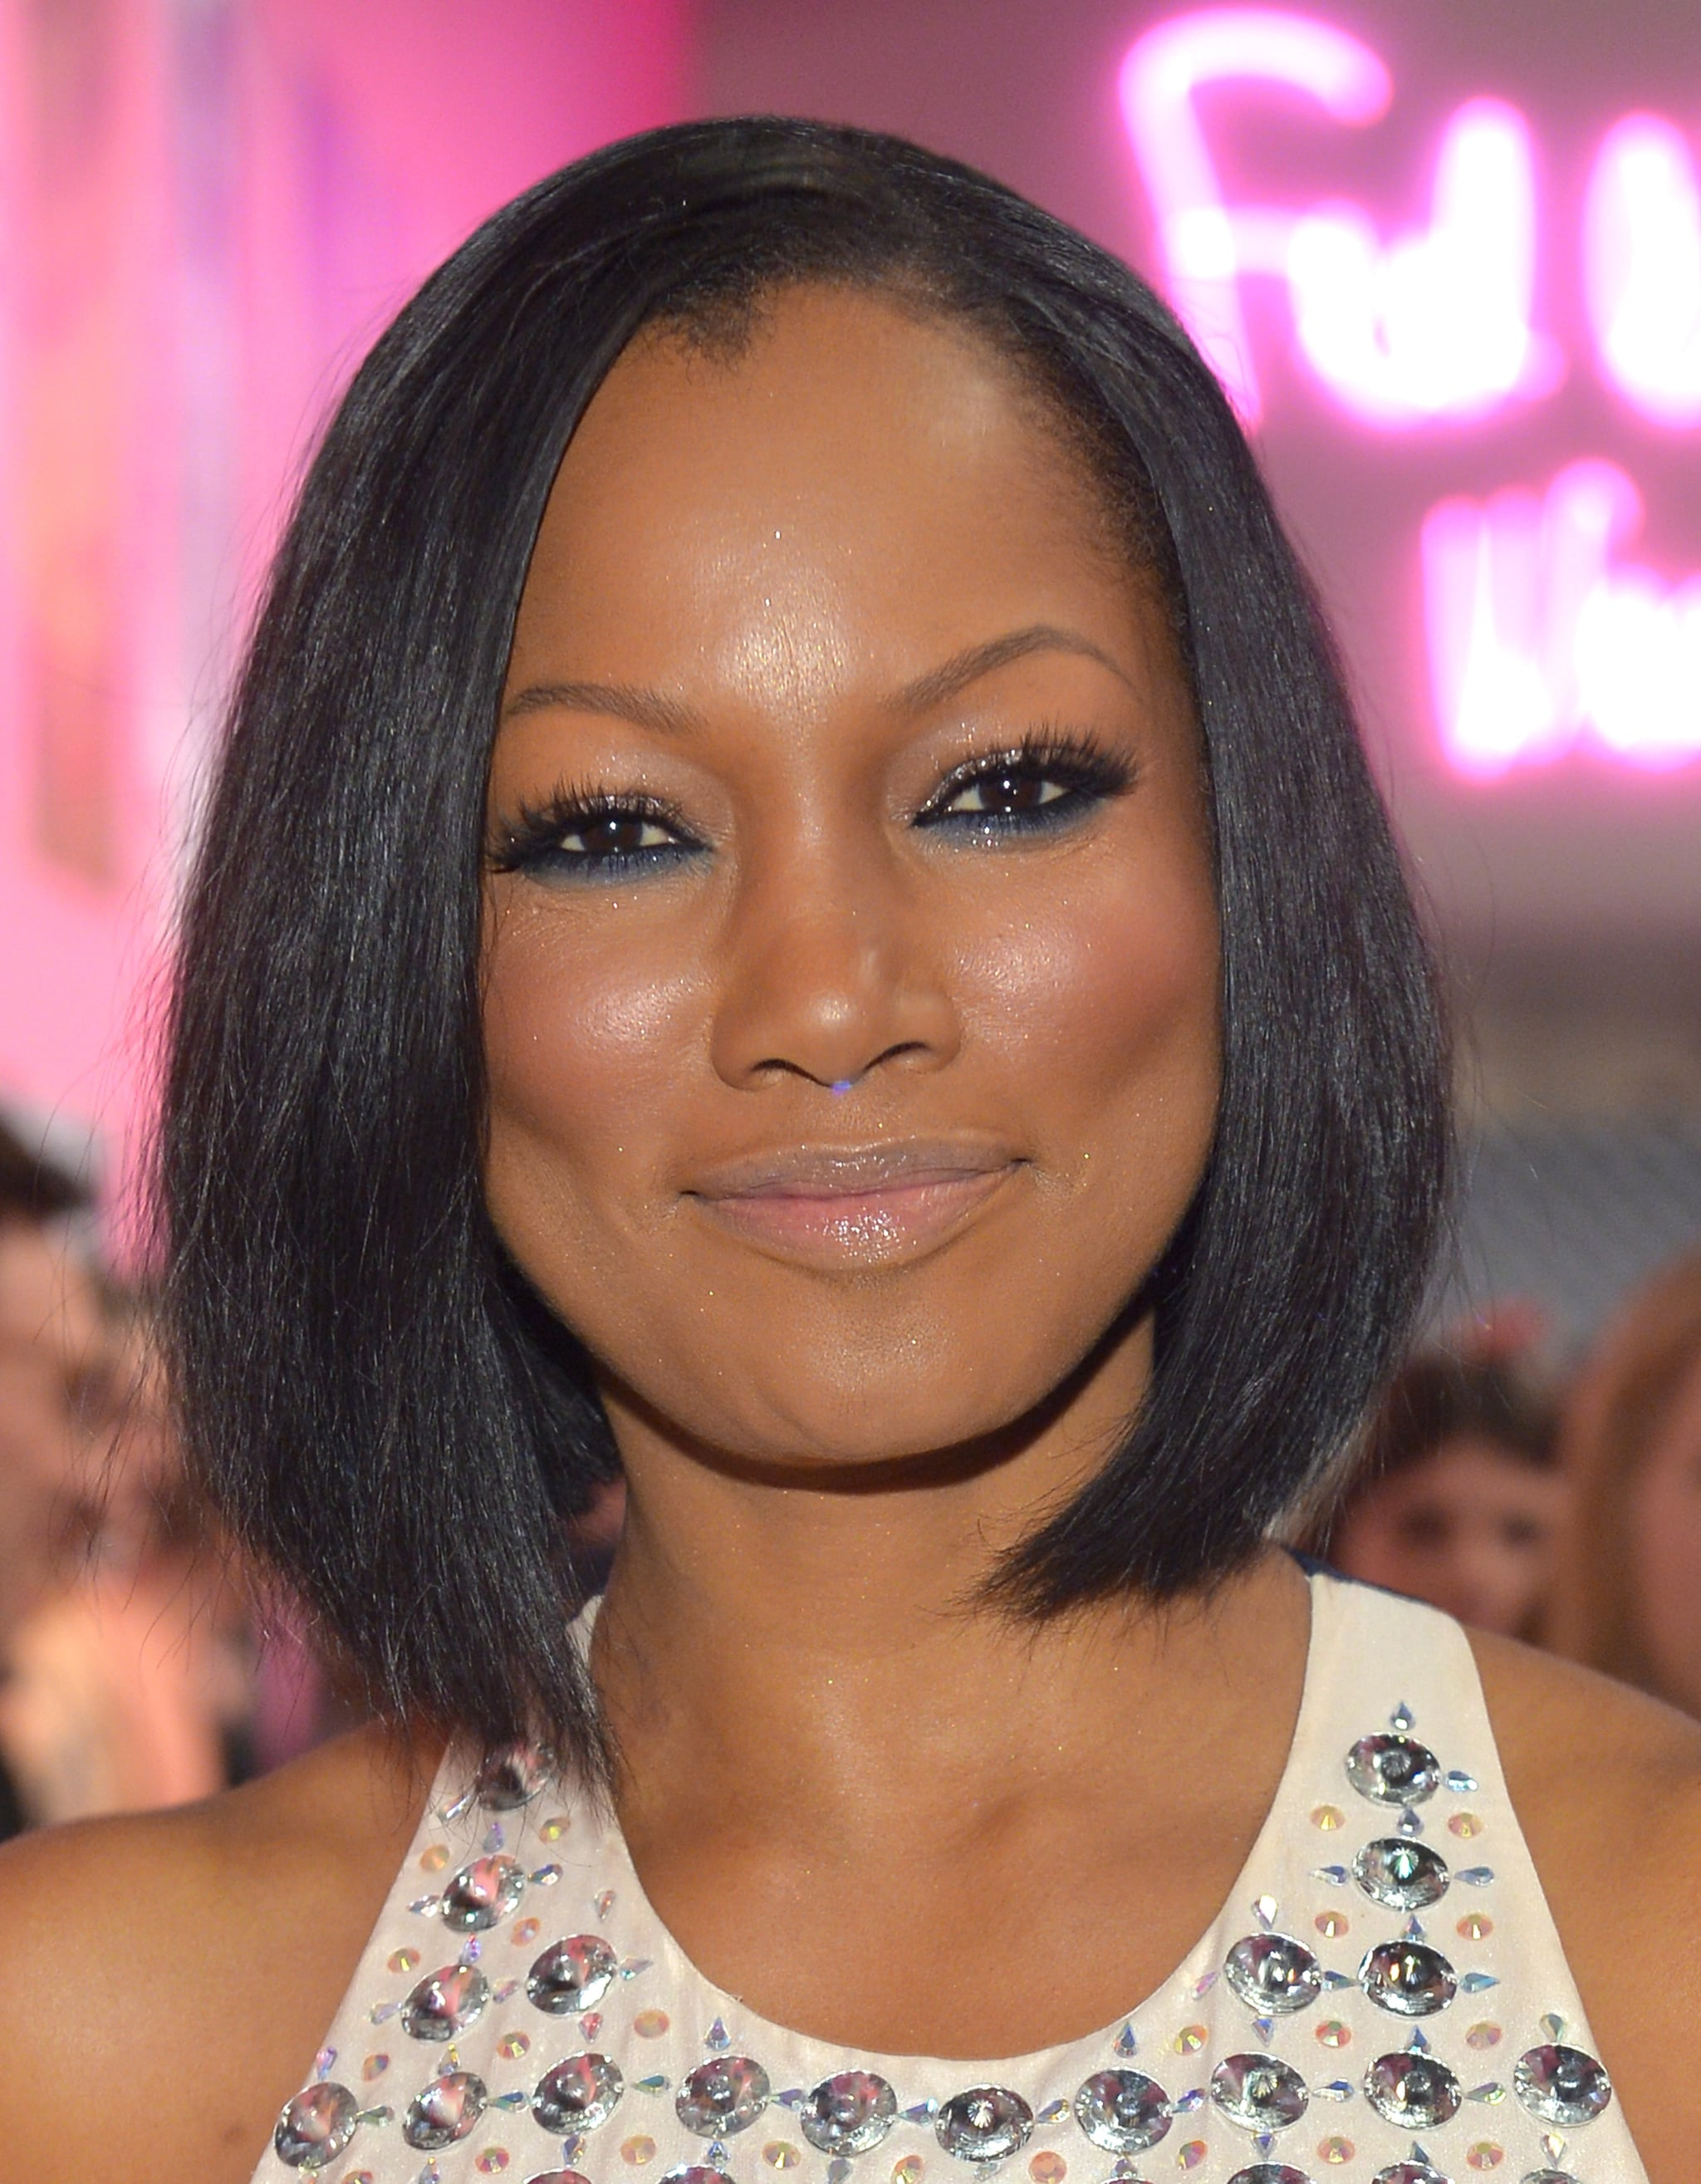 When applying eye makeup this weekend, channel Garcelle Beauvais and swipe a thick line of color under your lower lash line.